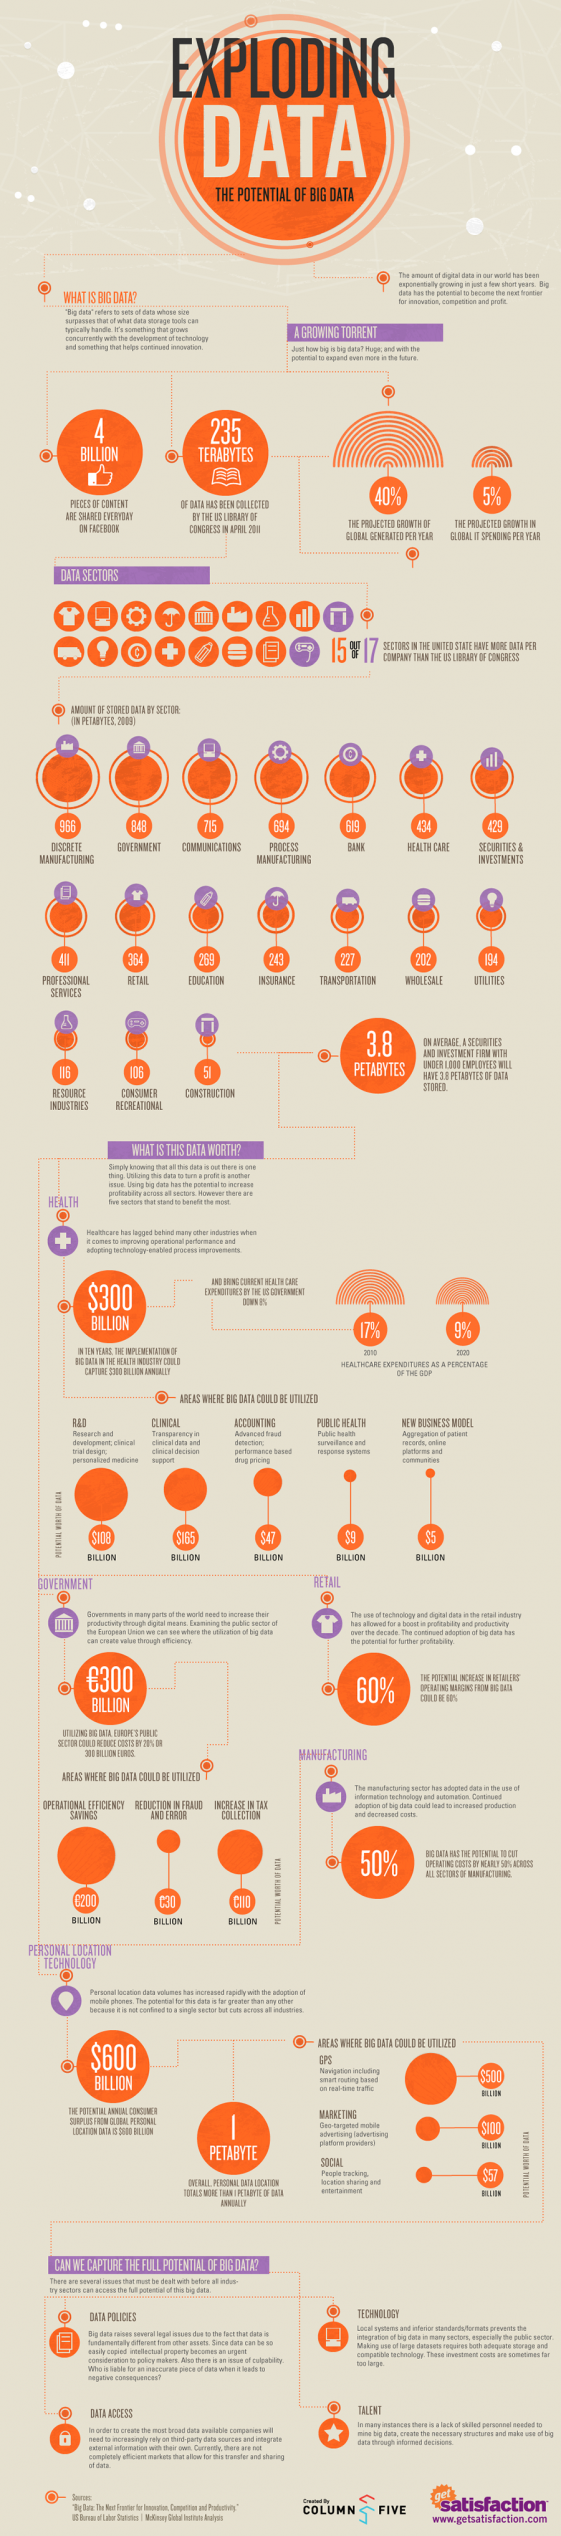 Big Data Infographic from Get Satisfaction